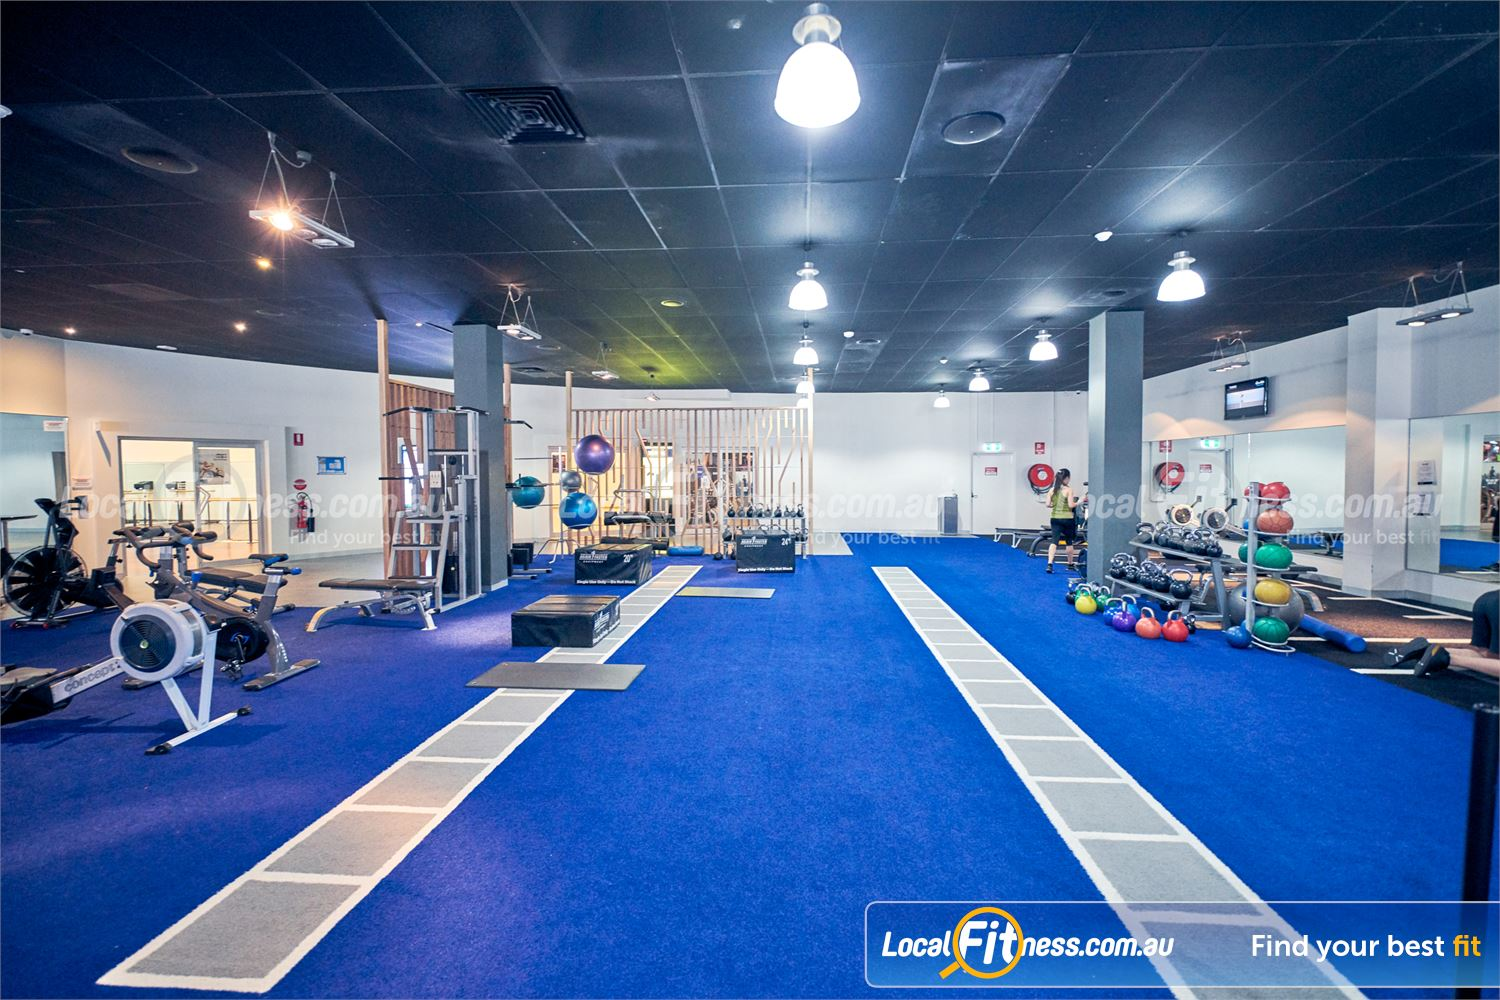 Goodlife Health Clubs Knox City Near Wantirna Spacious area to stretch and work your core.